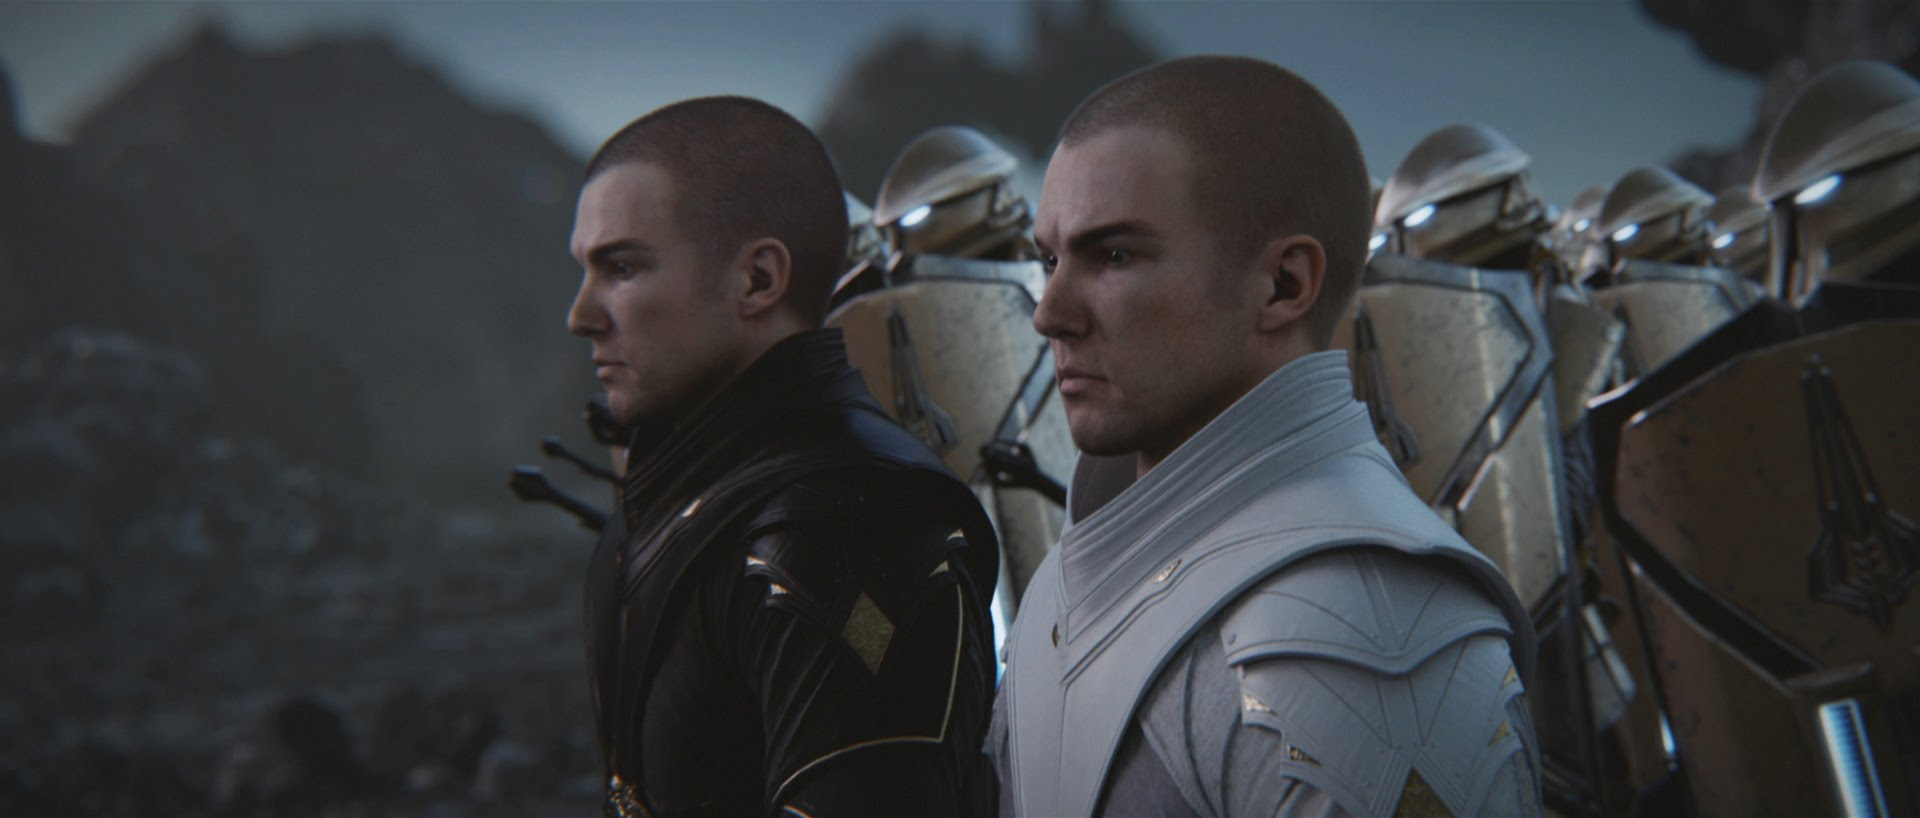 E3: STAR WARS – THE OLD REPUBLIC: KNIGHTS OF THE FALLEN EMPIRE